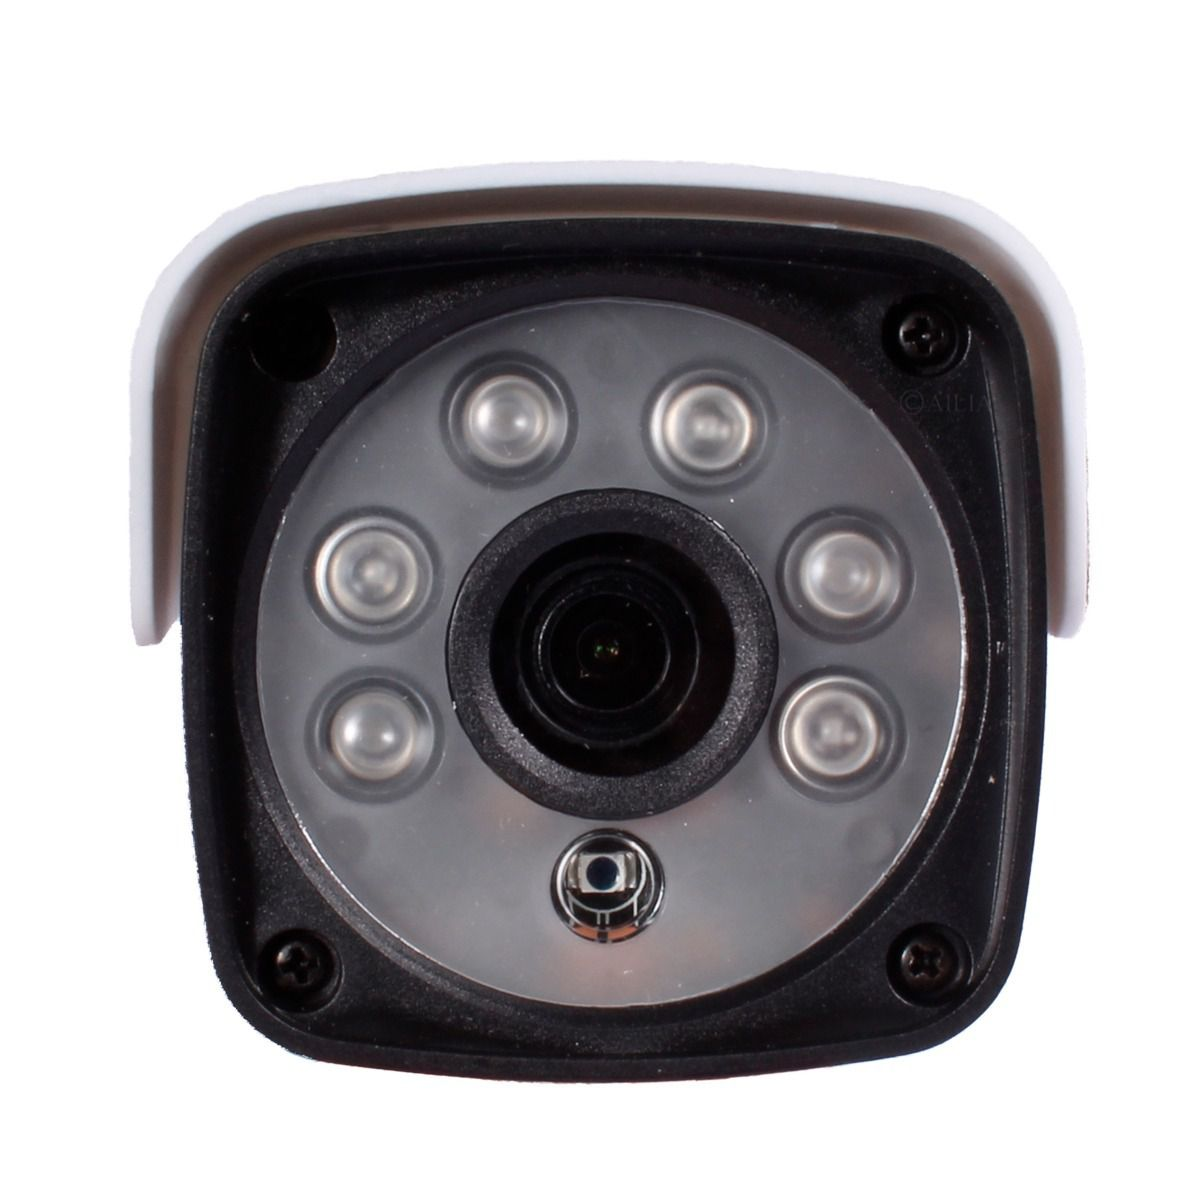 Kit Nvr Com 4 Cameras Ip Bullet Poe 2mp (1080p) 3.6mm Luatek